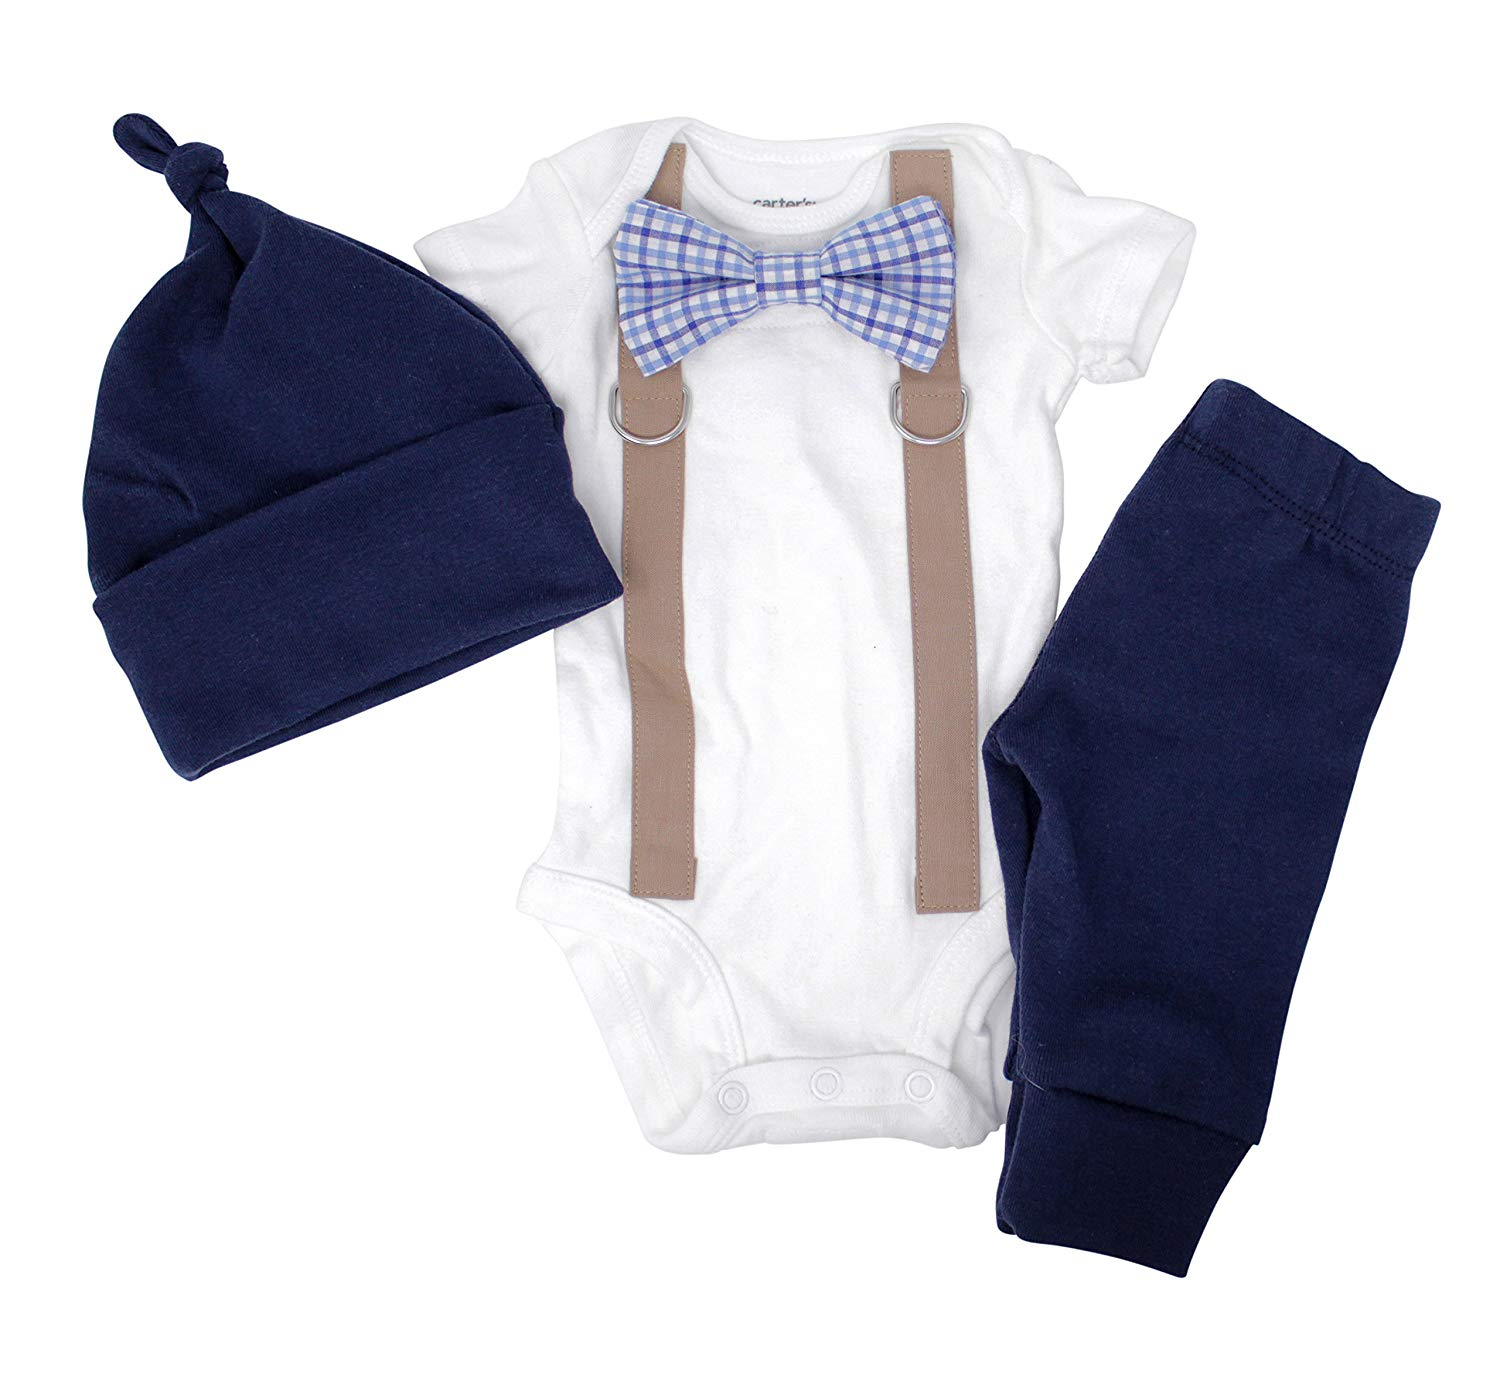 ab0727c291a6 Get Quotations · Cuddle Sleep Dream Newborn Boy Coming Home Outfit. Navy    Brown Bow Tie and Suspender